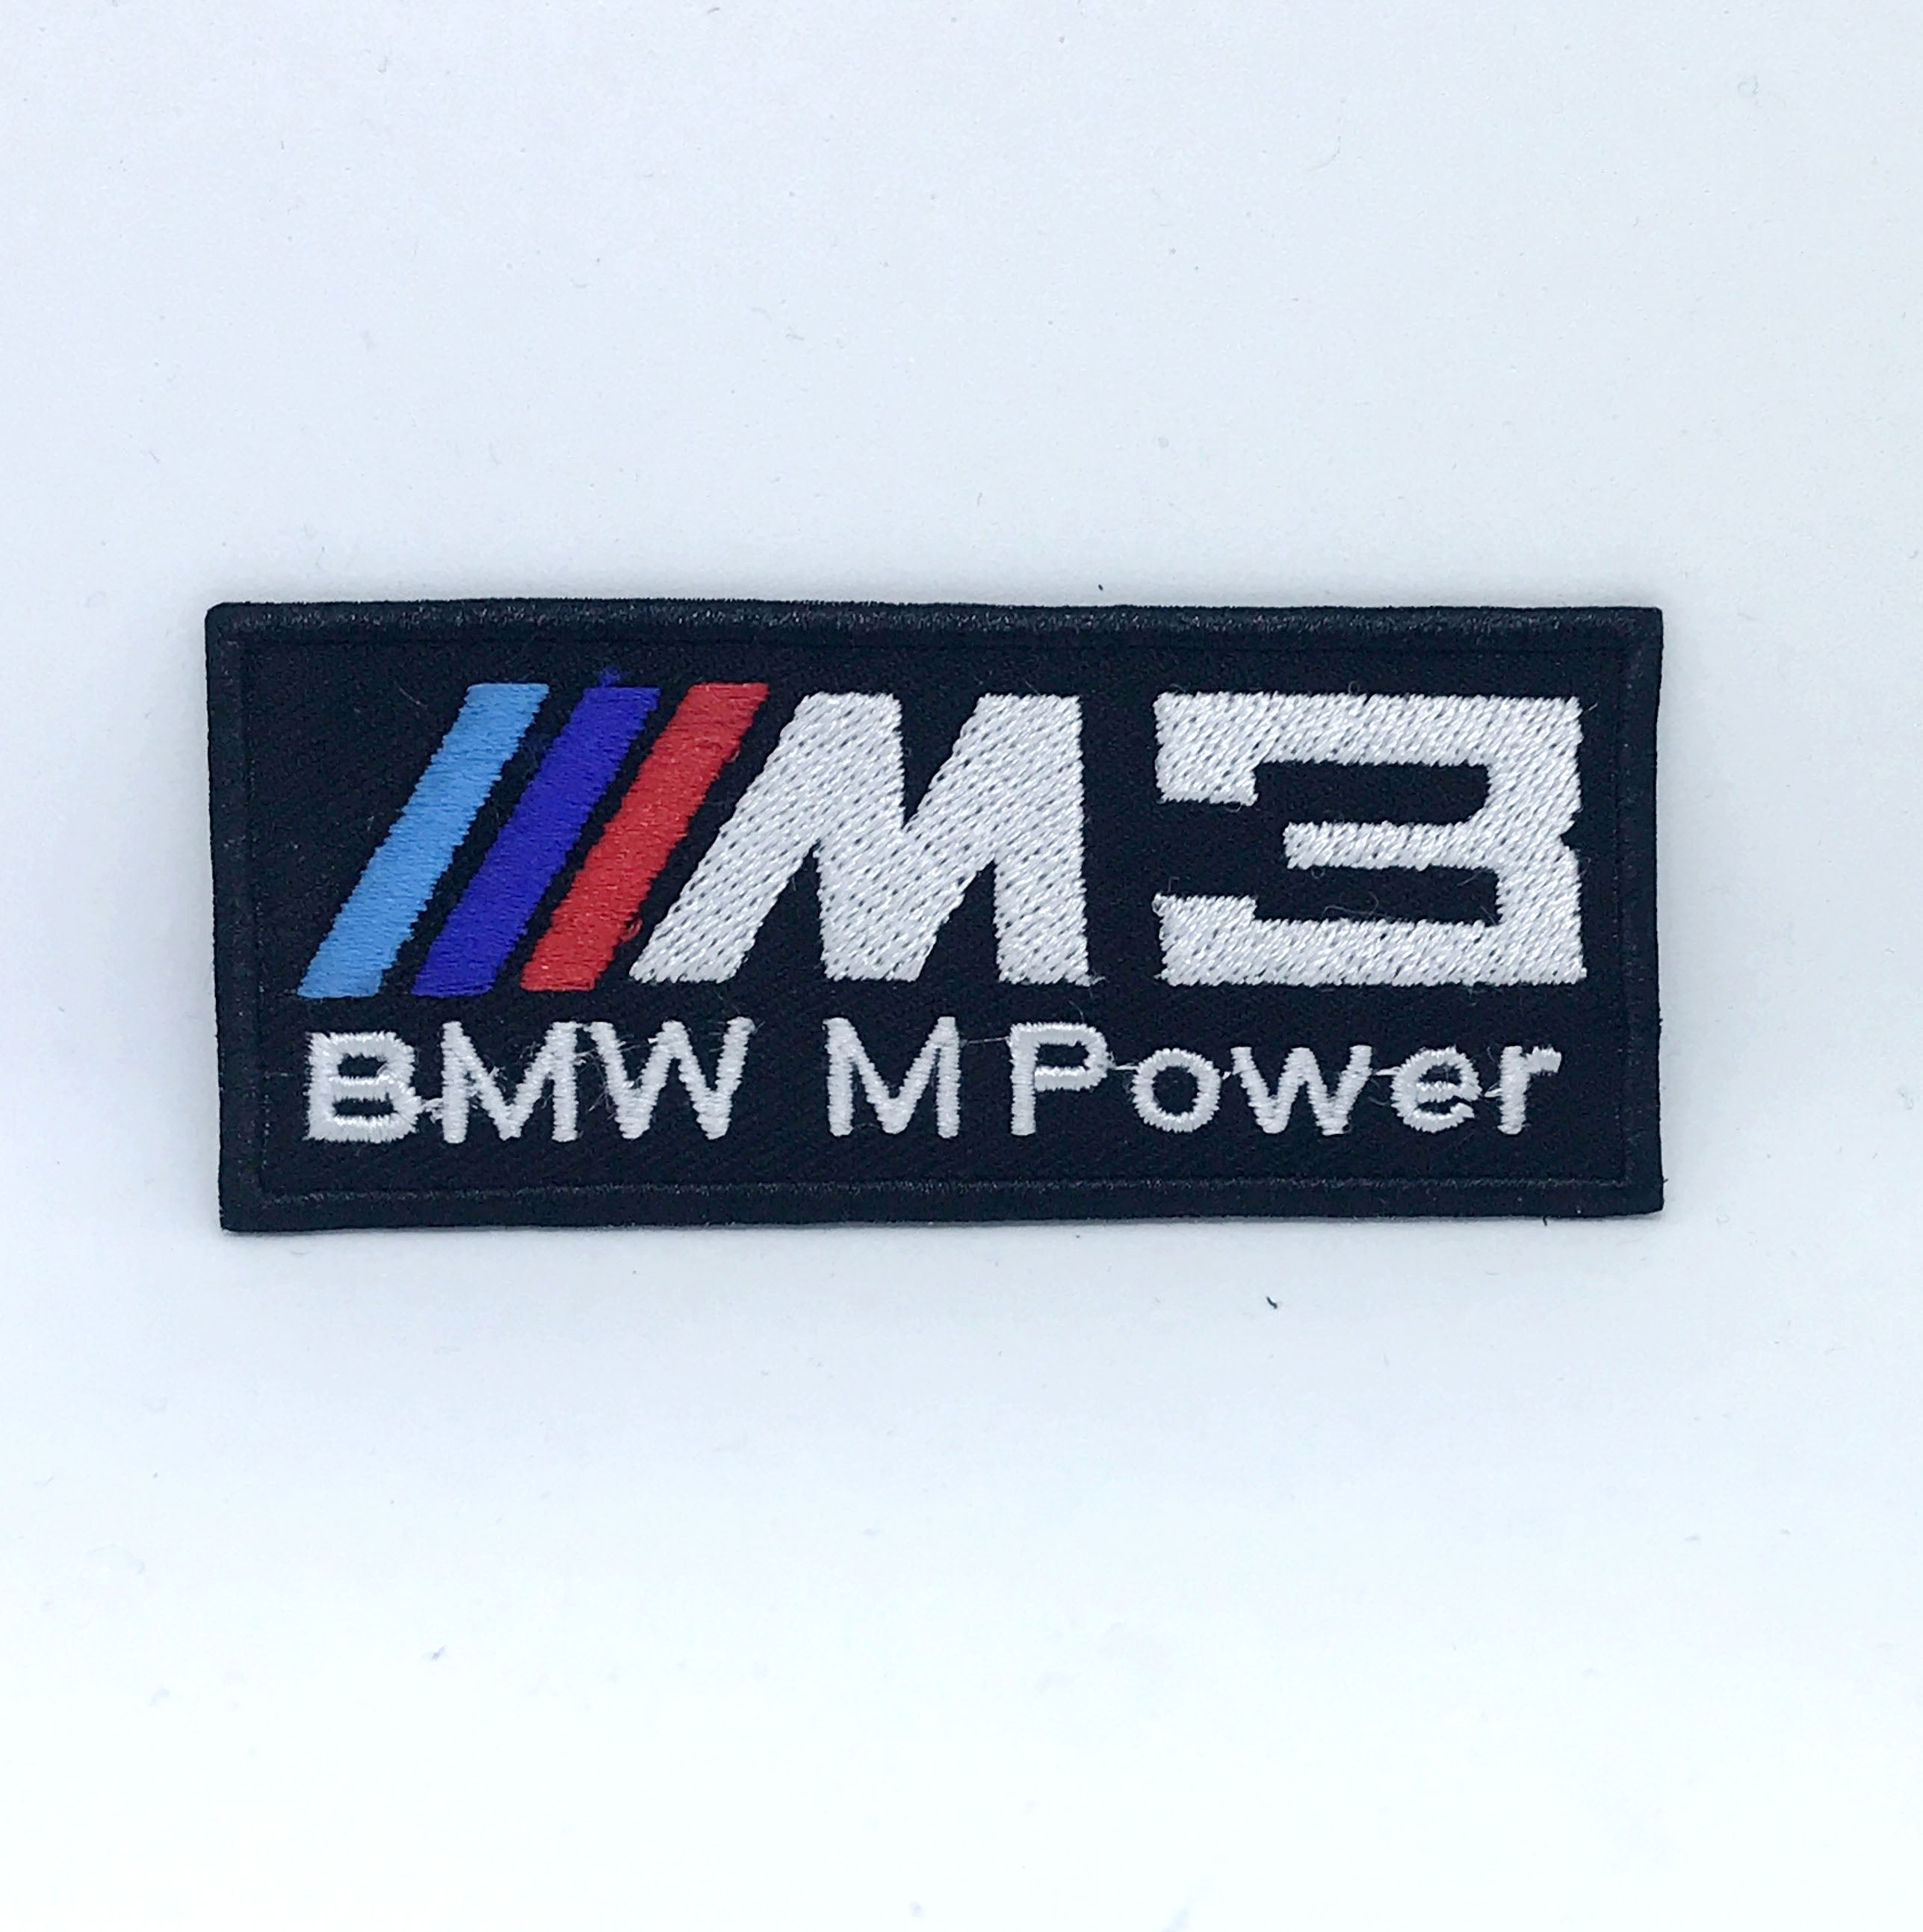 BMW M power M3 Automobile car racing series Iron on Sew on Embroidered Patch - Patches-Badges